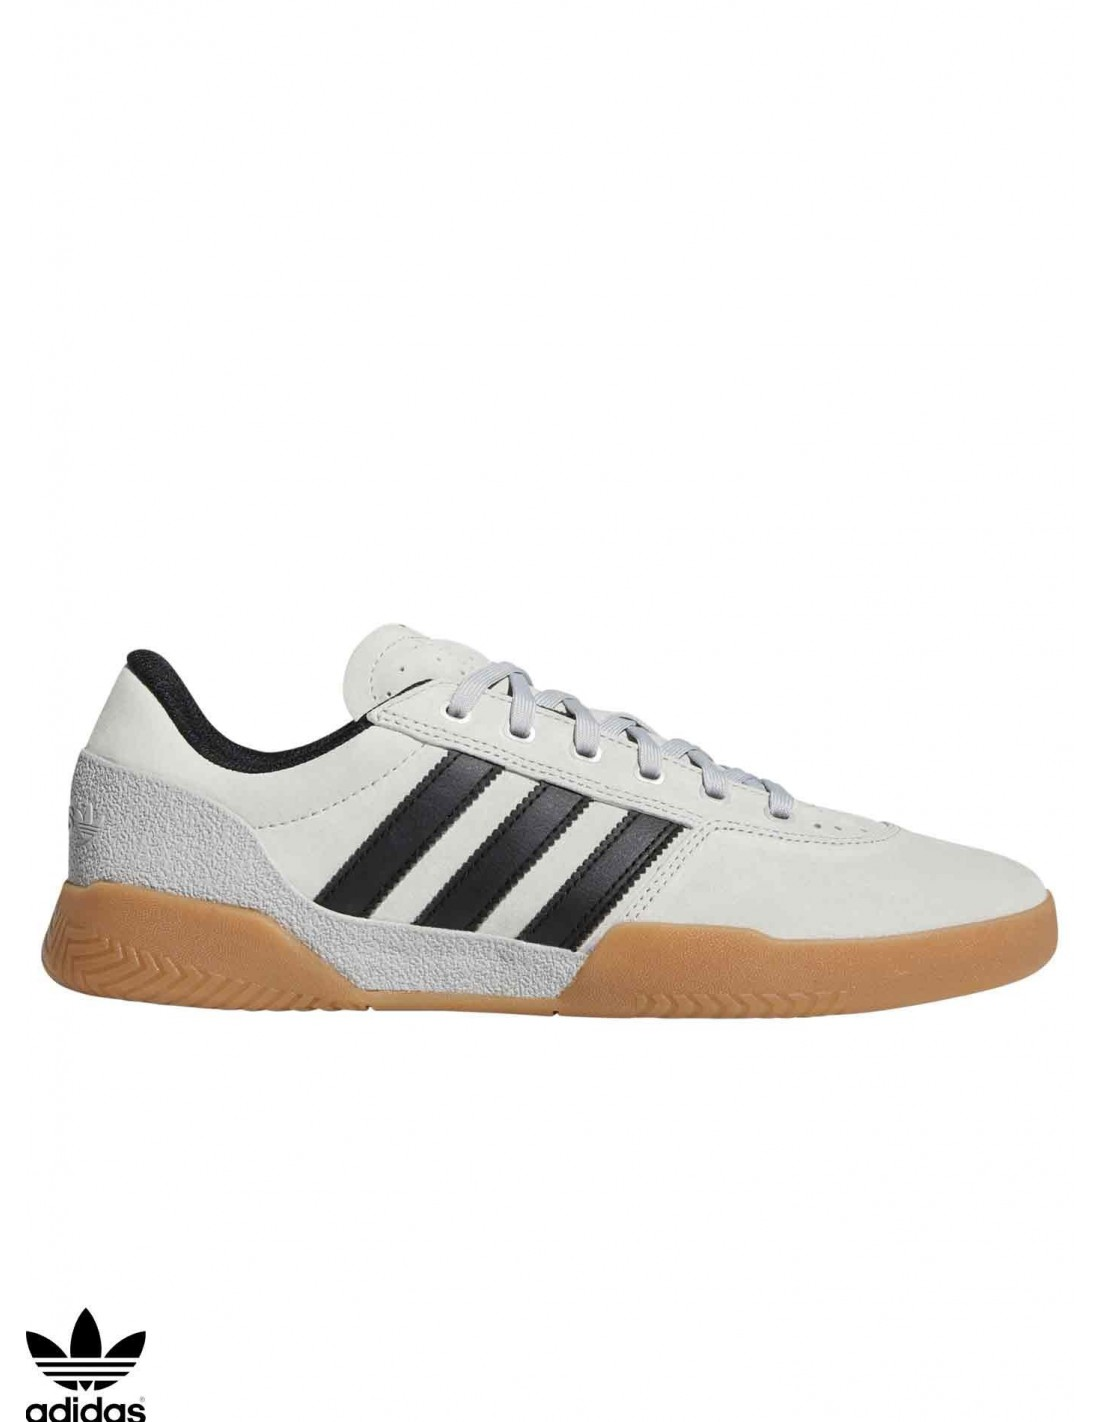 City Cup Gretwo Skate Shoes